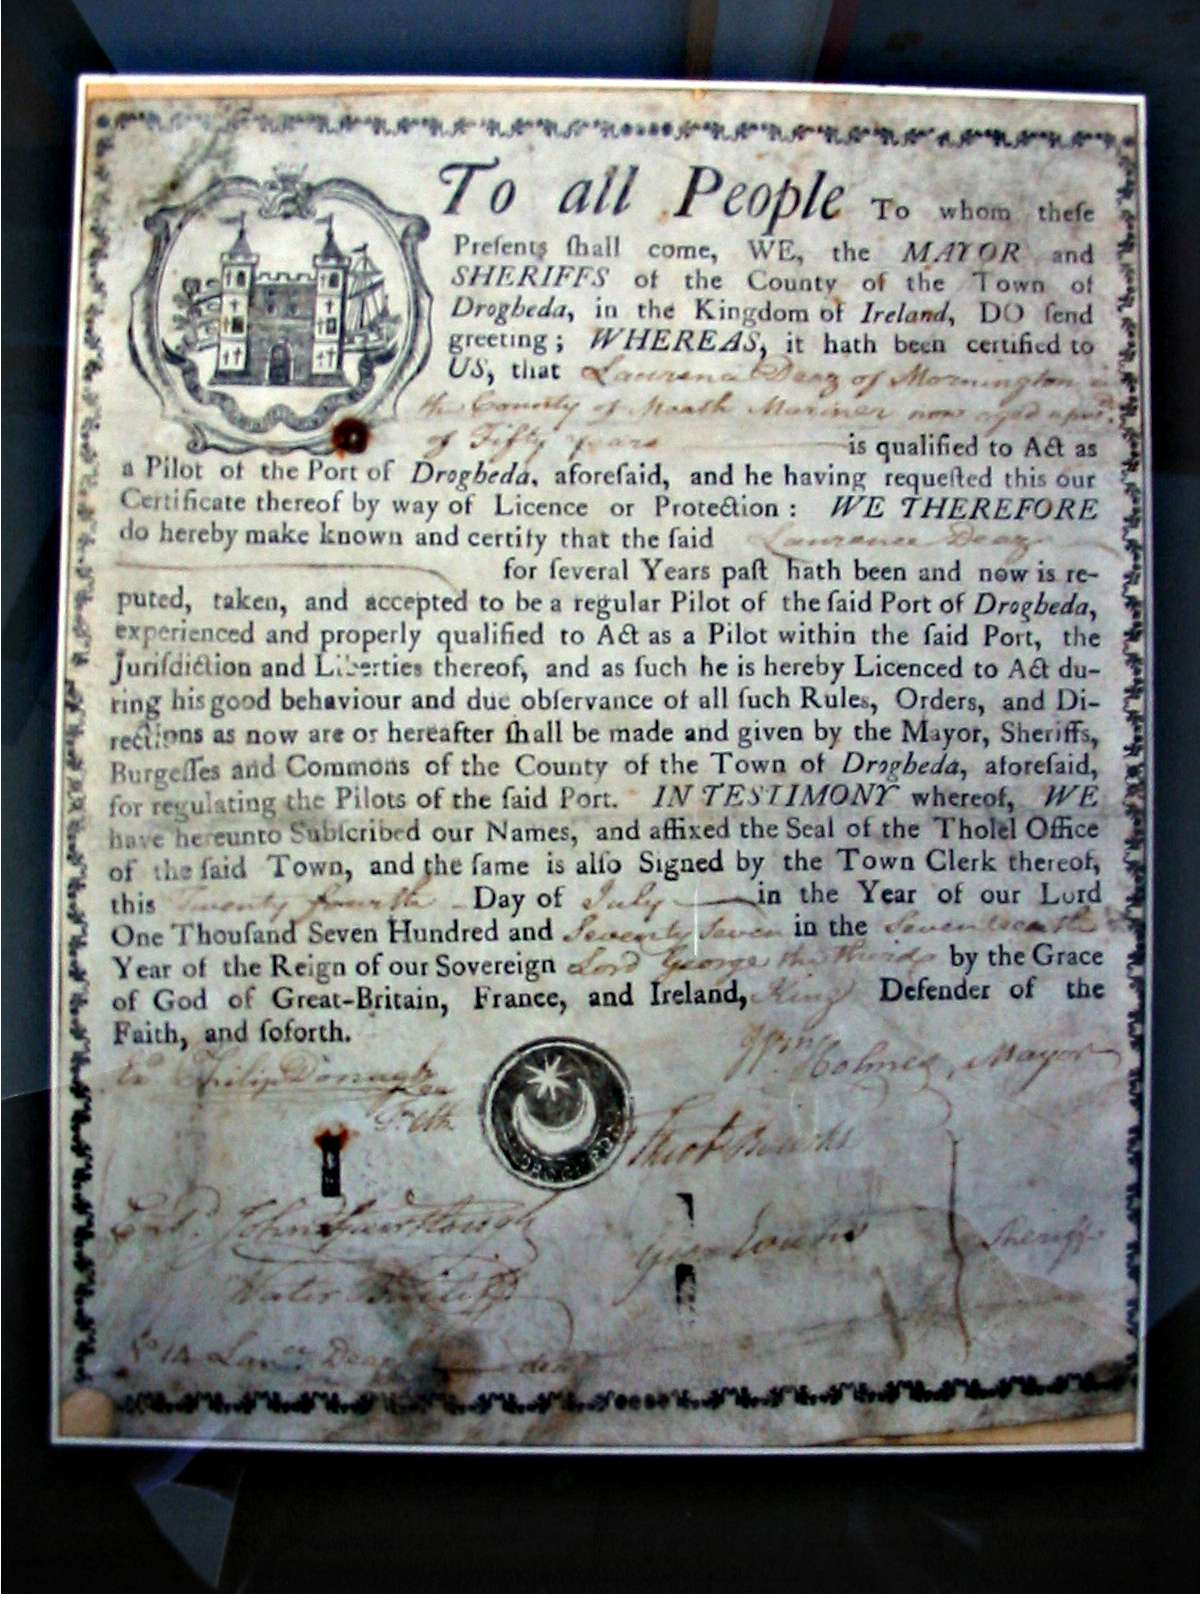 Drogheda Port Pilot Certificate dated 1777 issued to Laurence Deaz